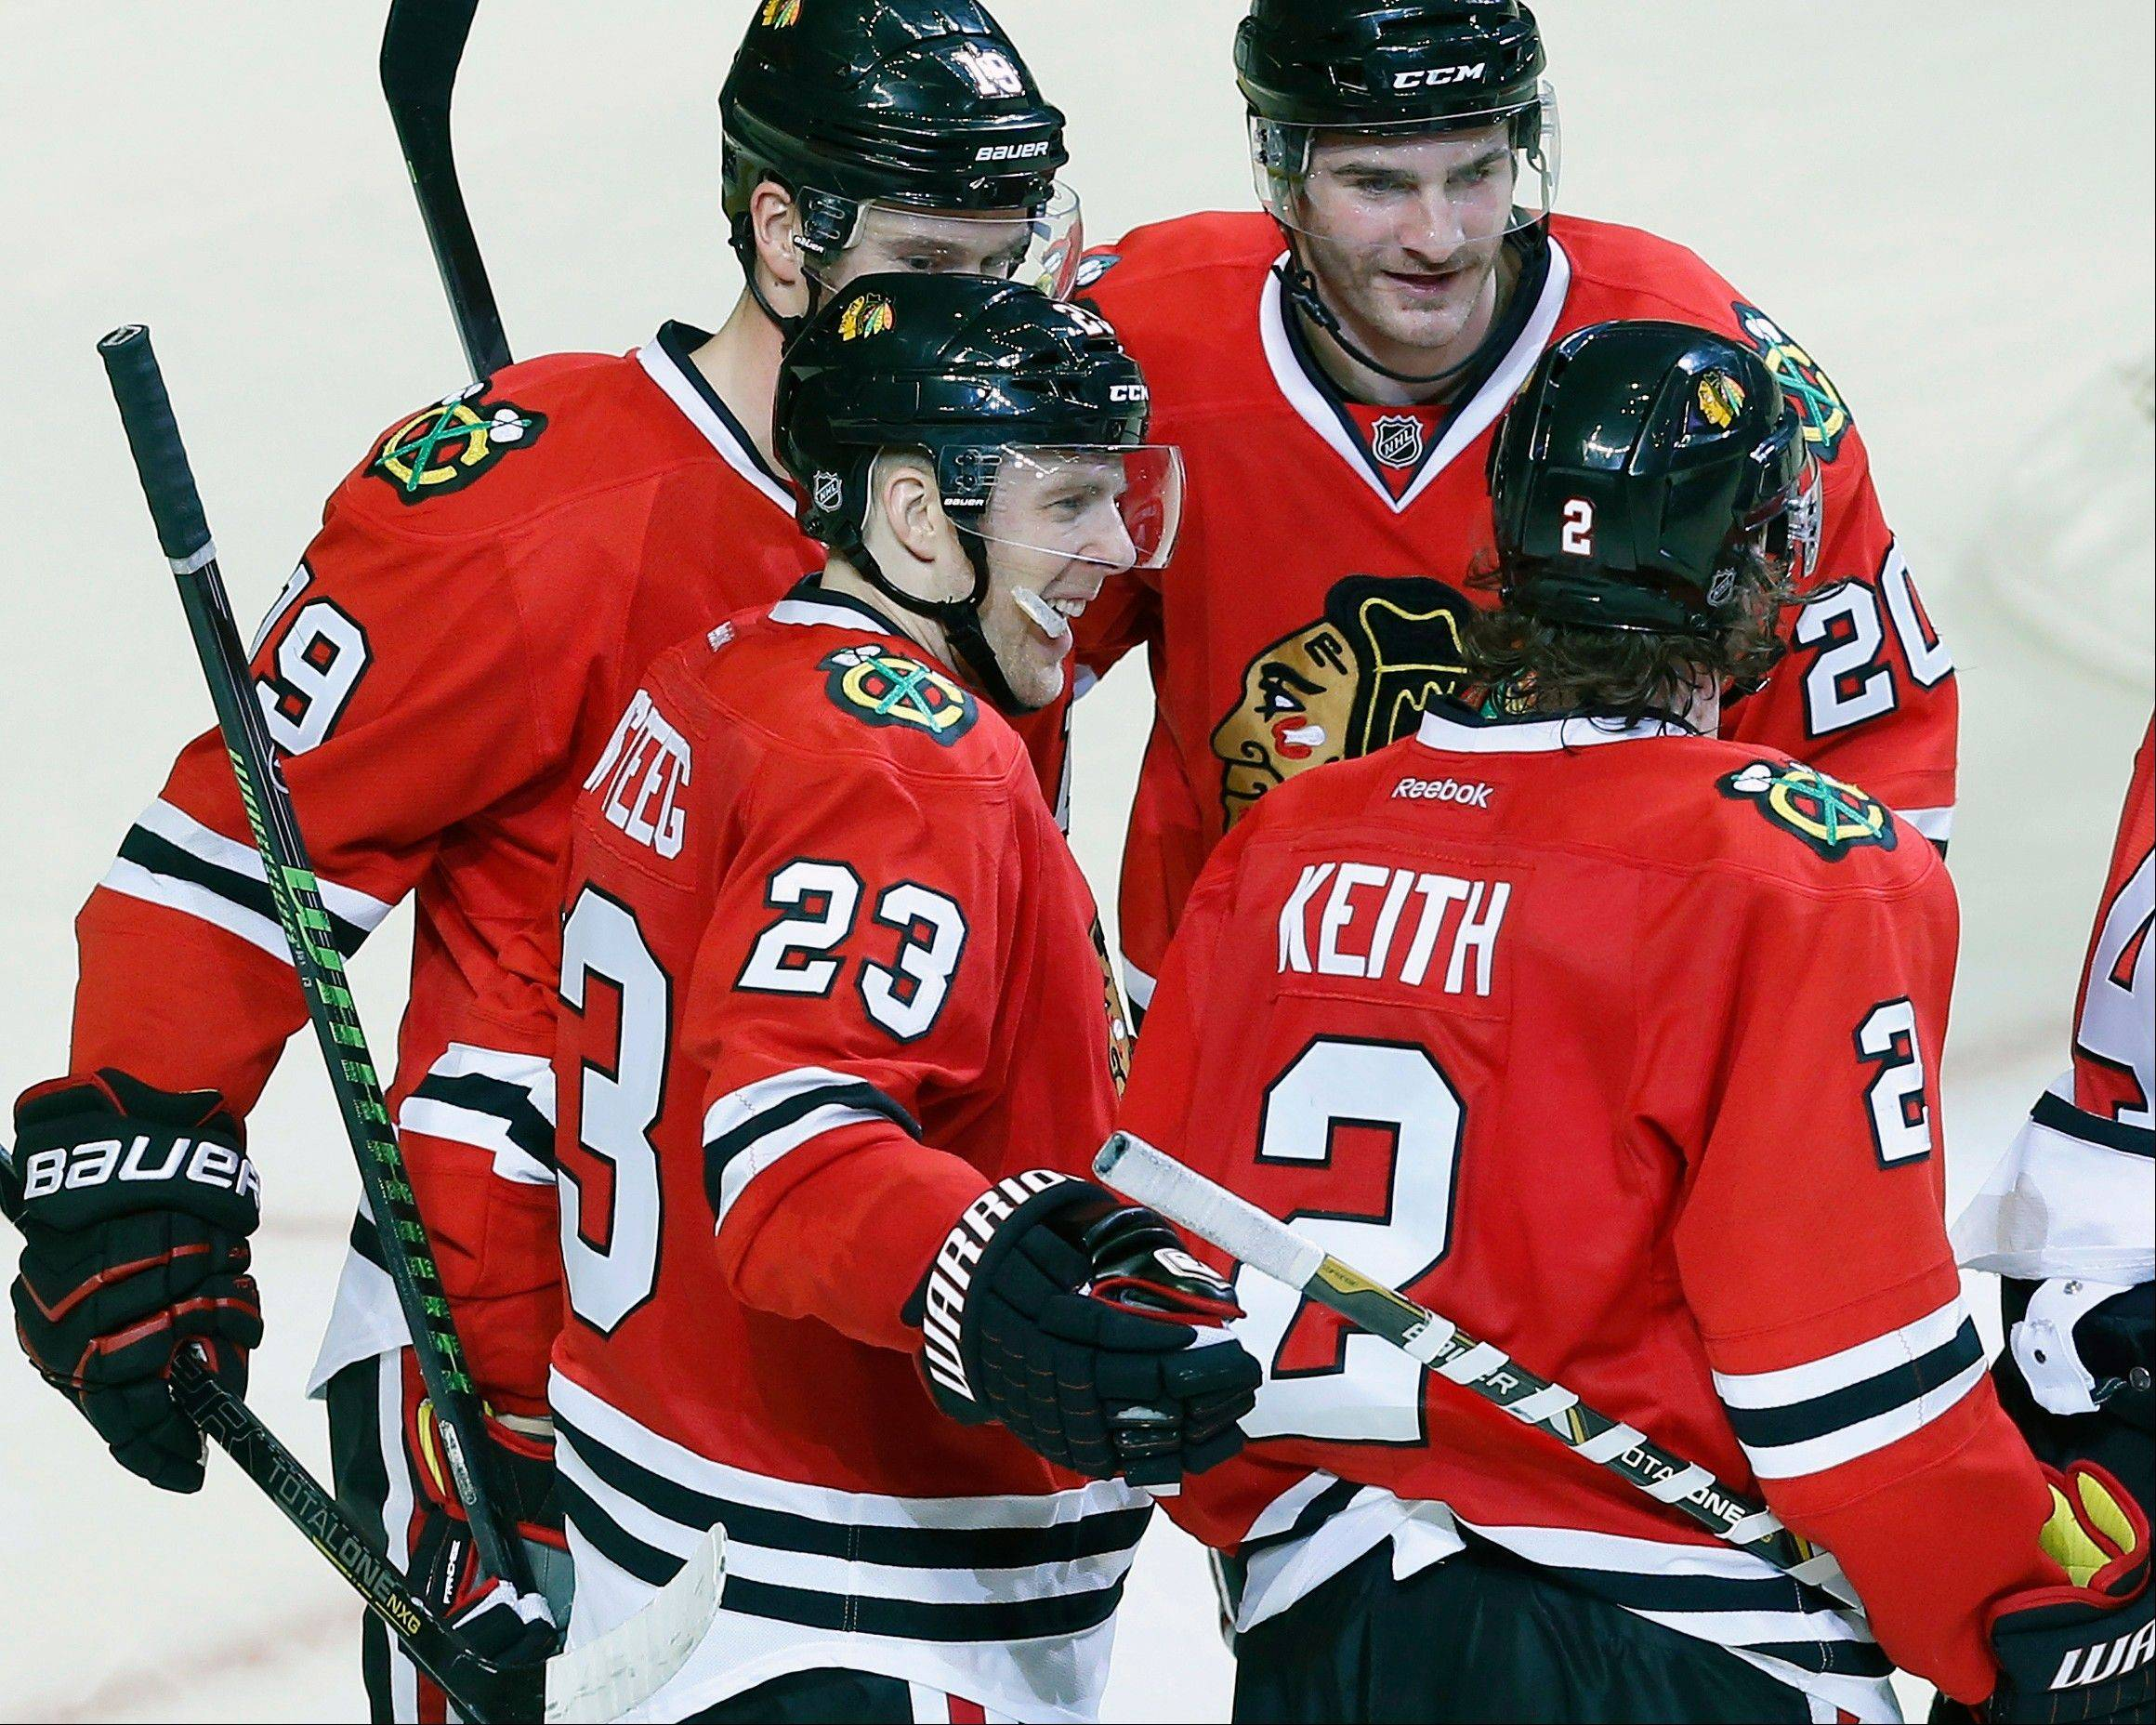 Chicago Blackhawks right wing Kris Versteeg (23) celebrates with teammates after scoring a goal against the San Jose Sharks during the third period of an NHL hockey game on Sunday, Nov. 17, 2013, in Chicago. (AP Photo/Andrew A. Nelles)